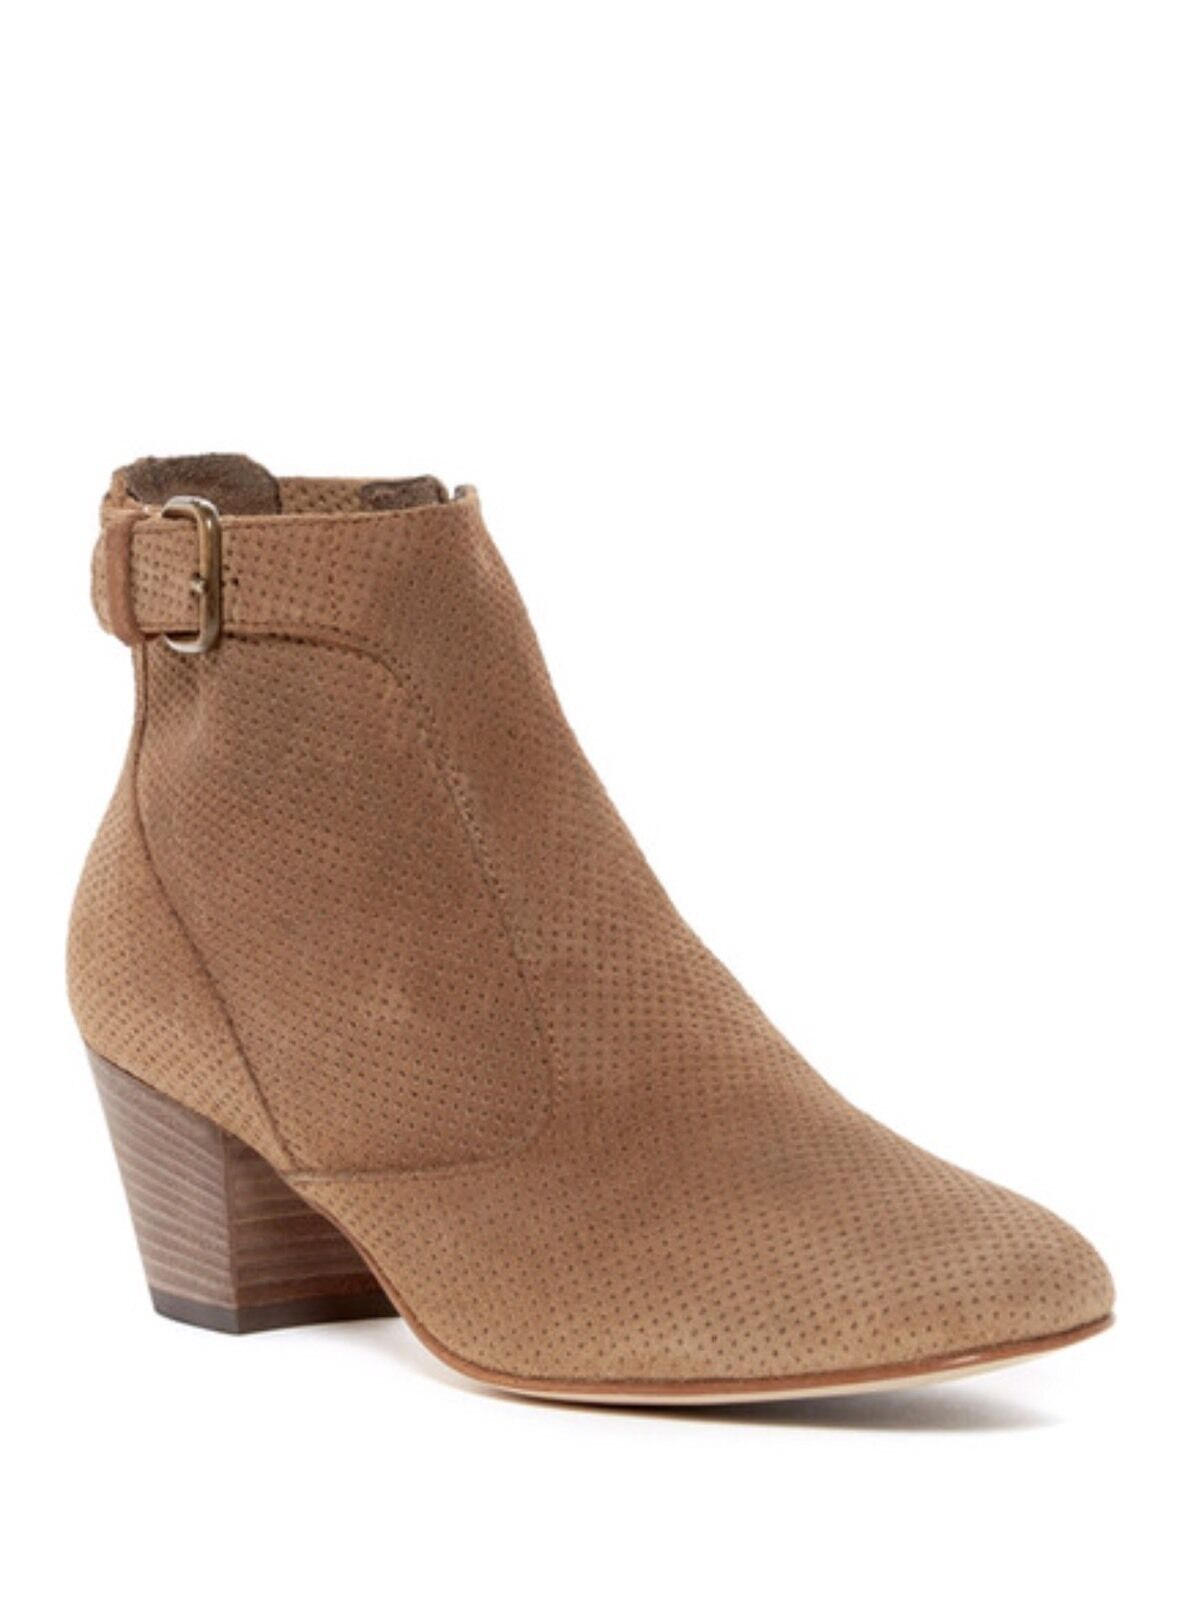 NEW  425 Aquatalia by Marvin K France Ankle Bootie Boots SZ 9.5